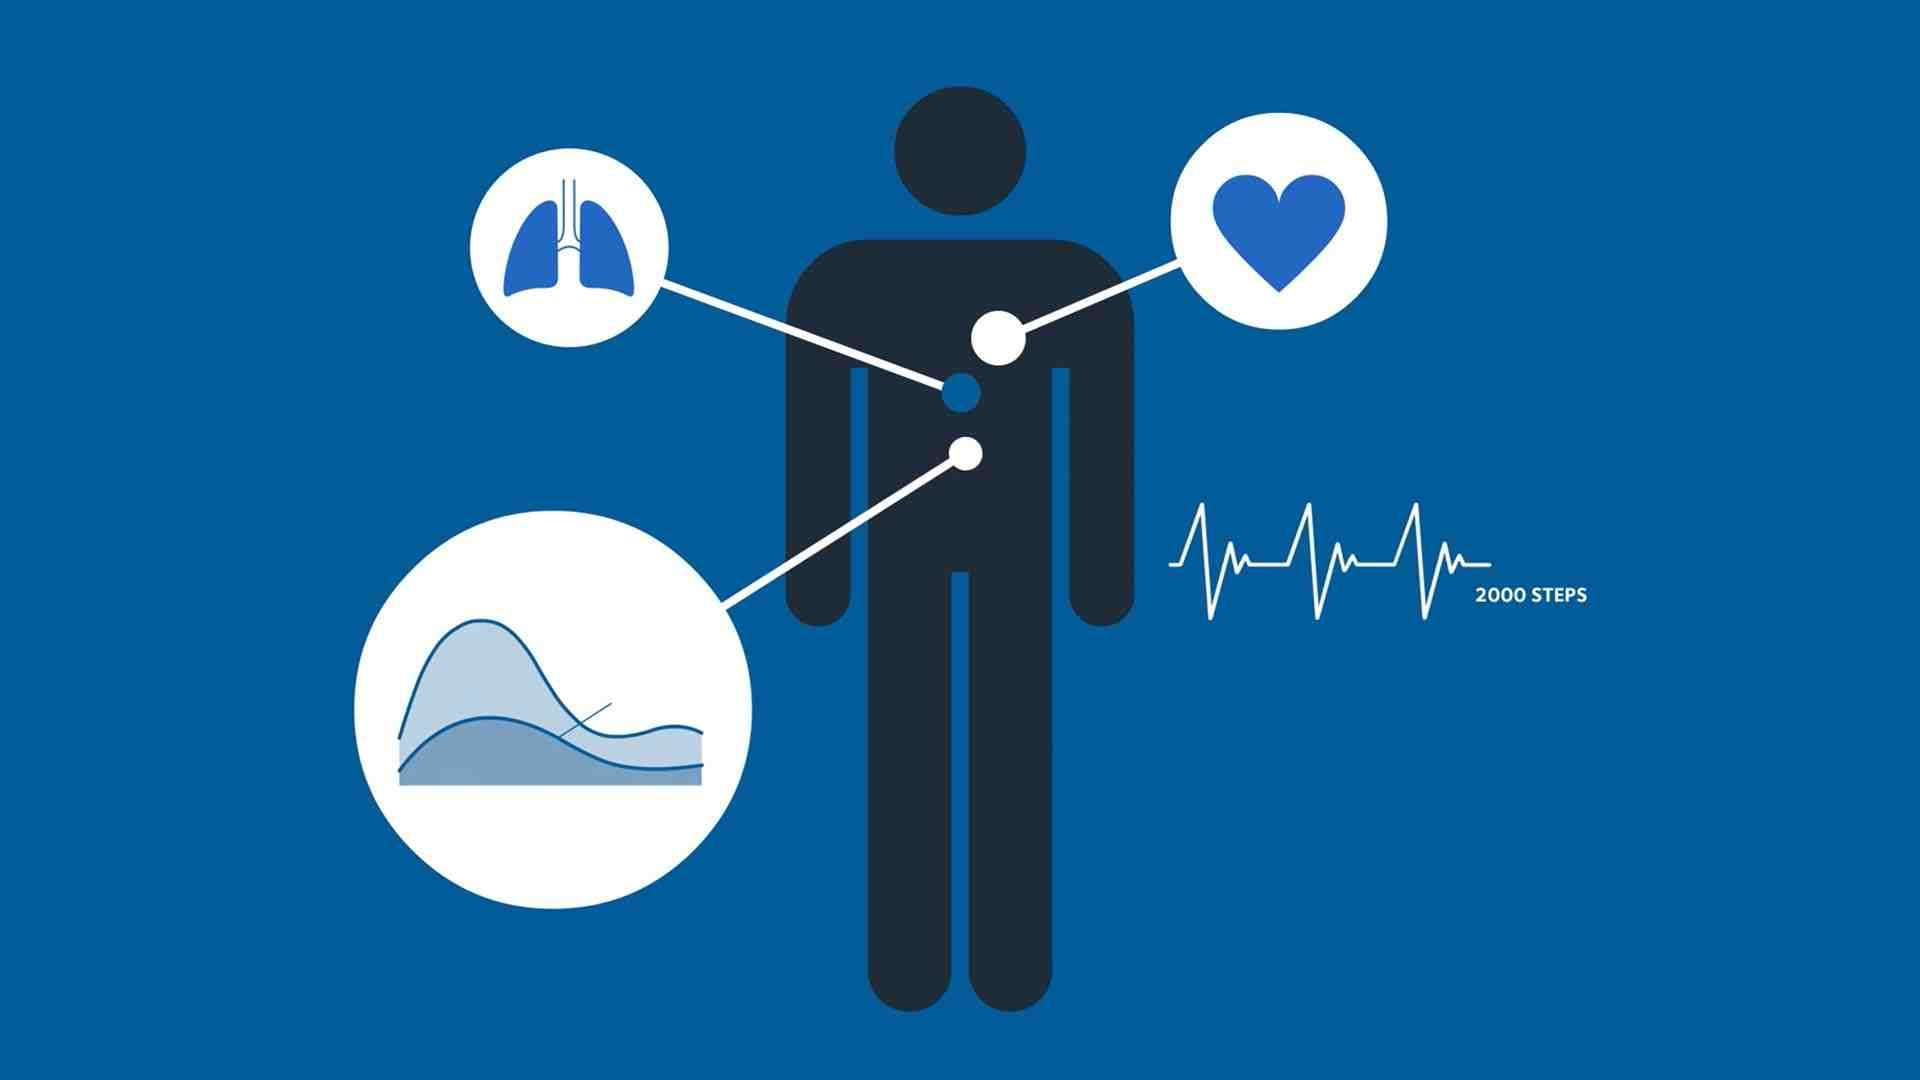 Healthcare in the Home facilitated by the Internet of Things